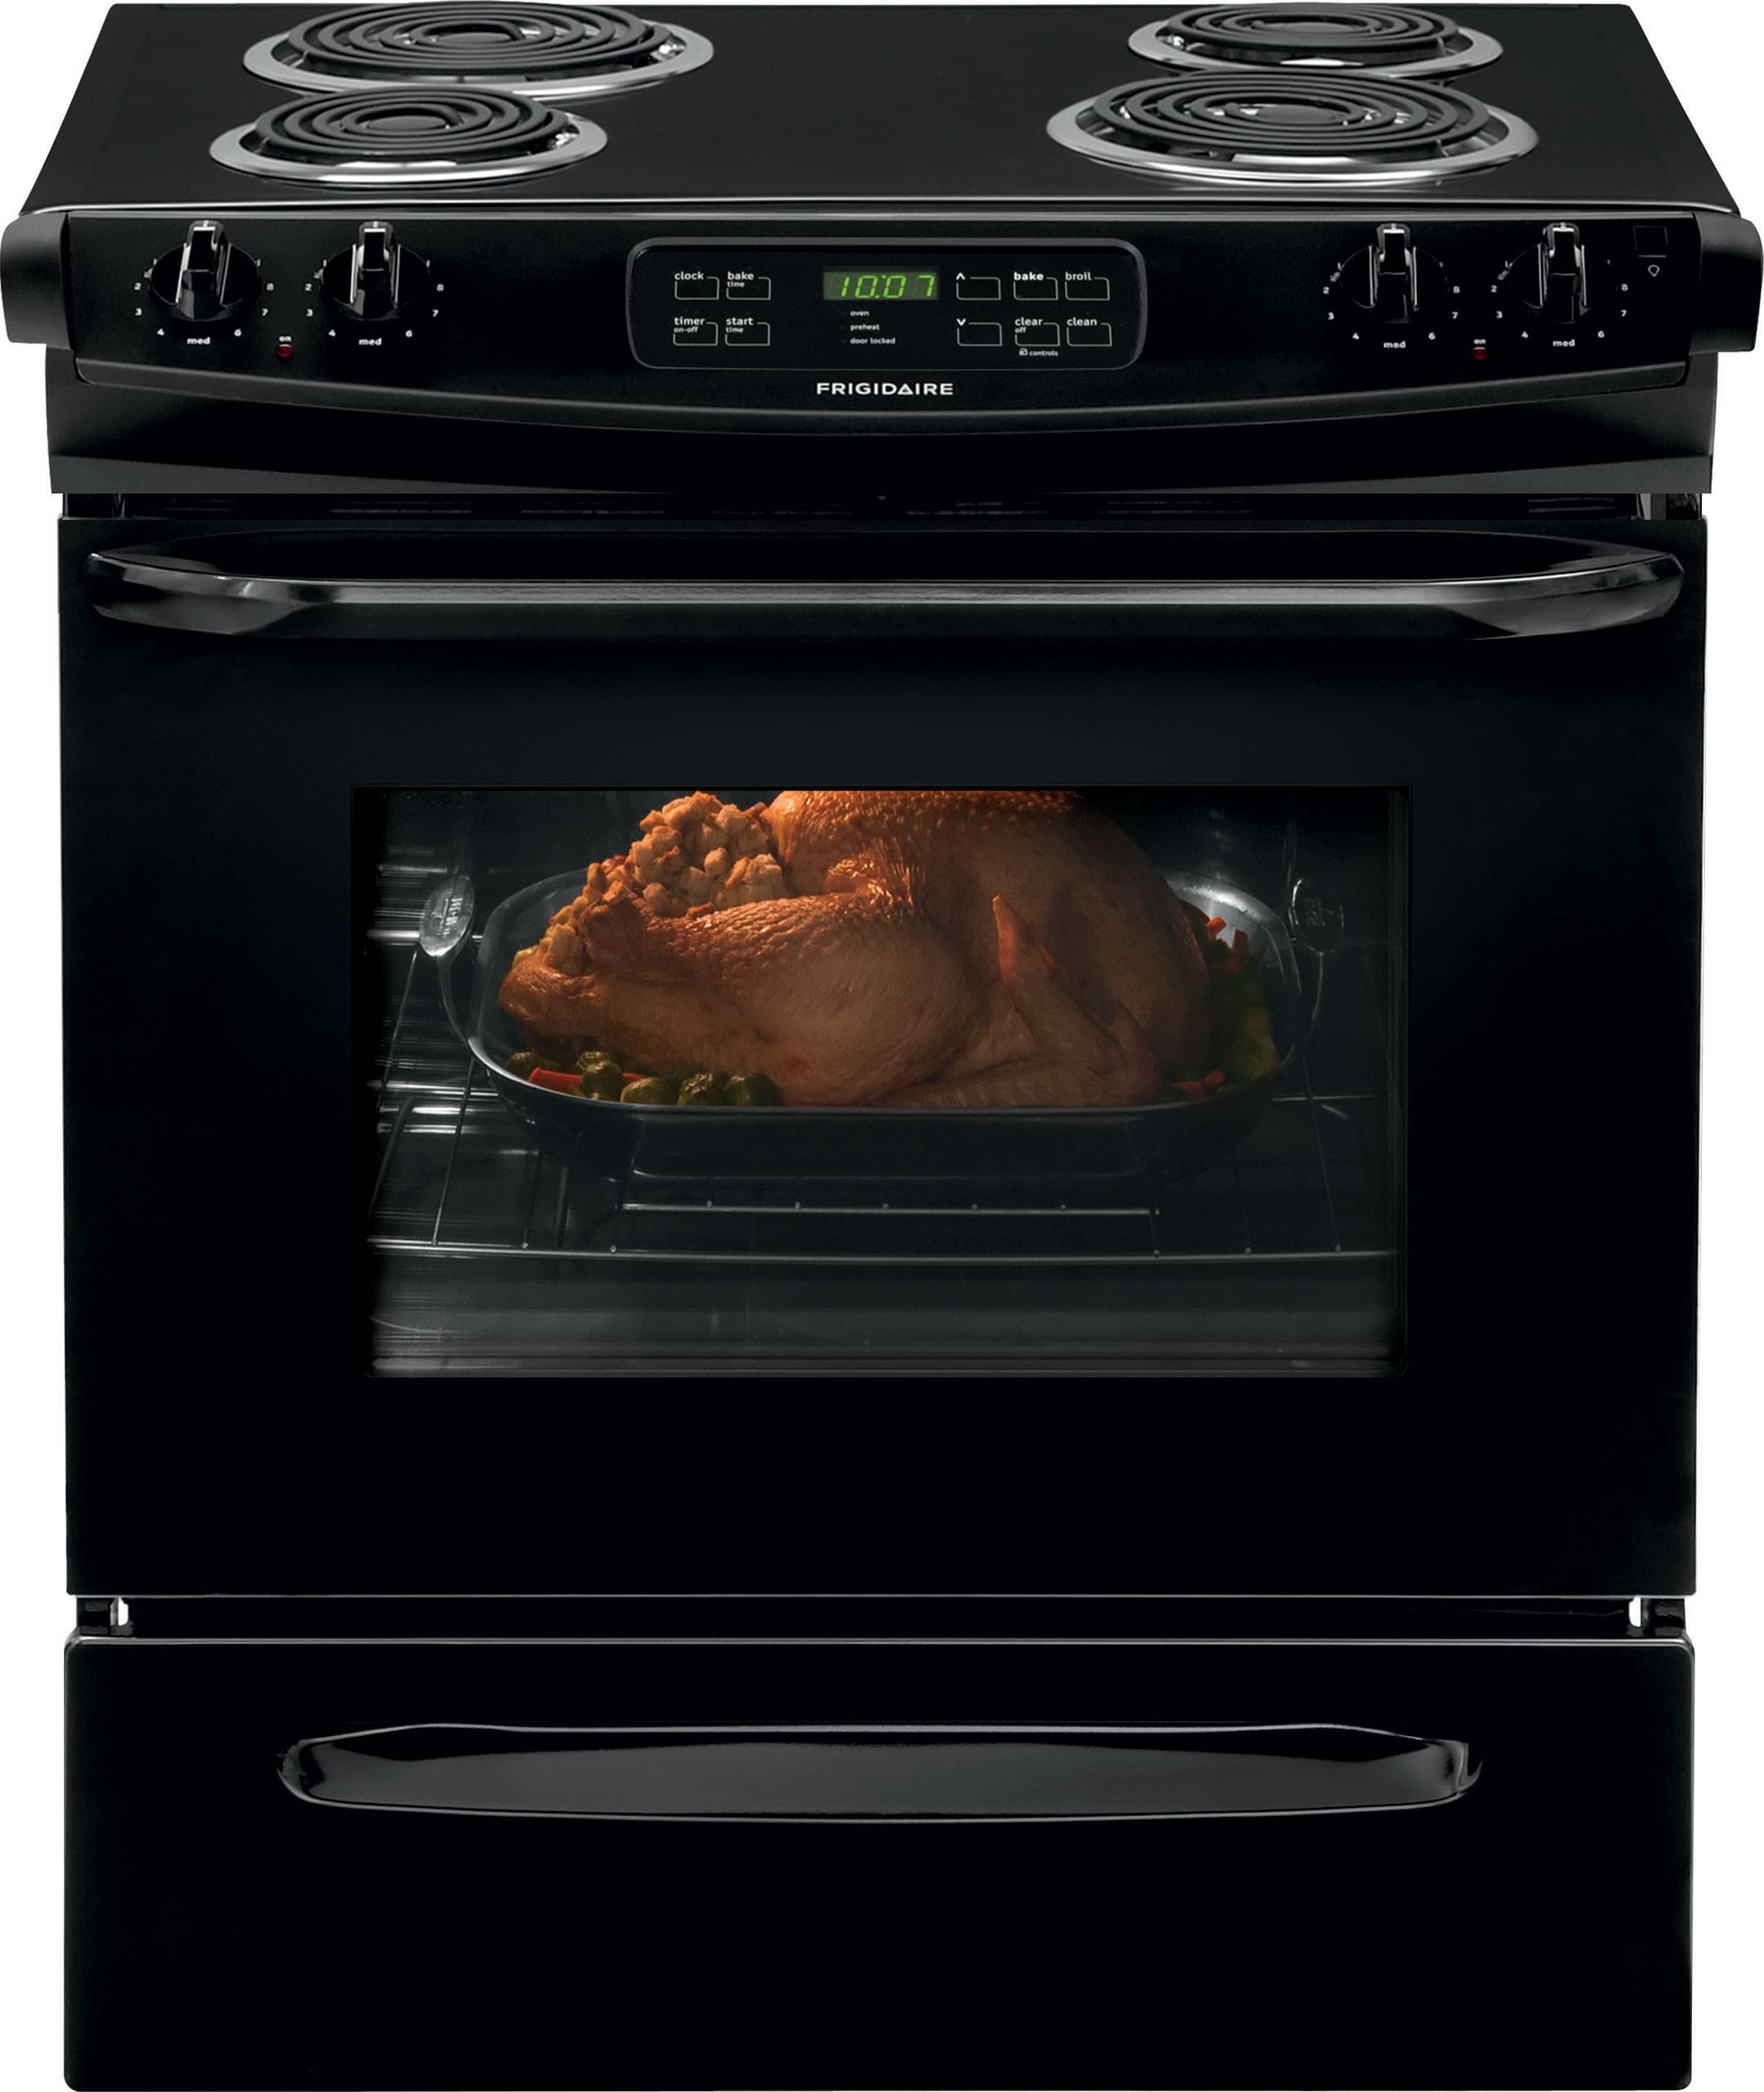 Frigidaire FFES3015PB 30 Inch Slide-In Electric Range with Multiple Broil  Options, Self-Clean, Storage Drawer, 4.6 cu. ft. Oven, 4 Coil Elements and  ADA ...